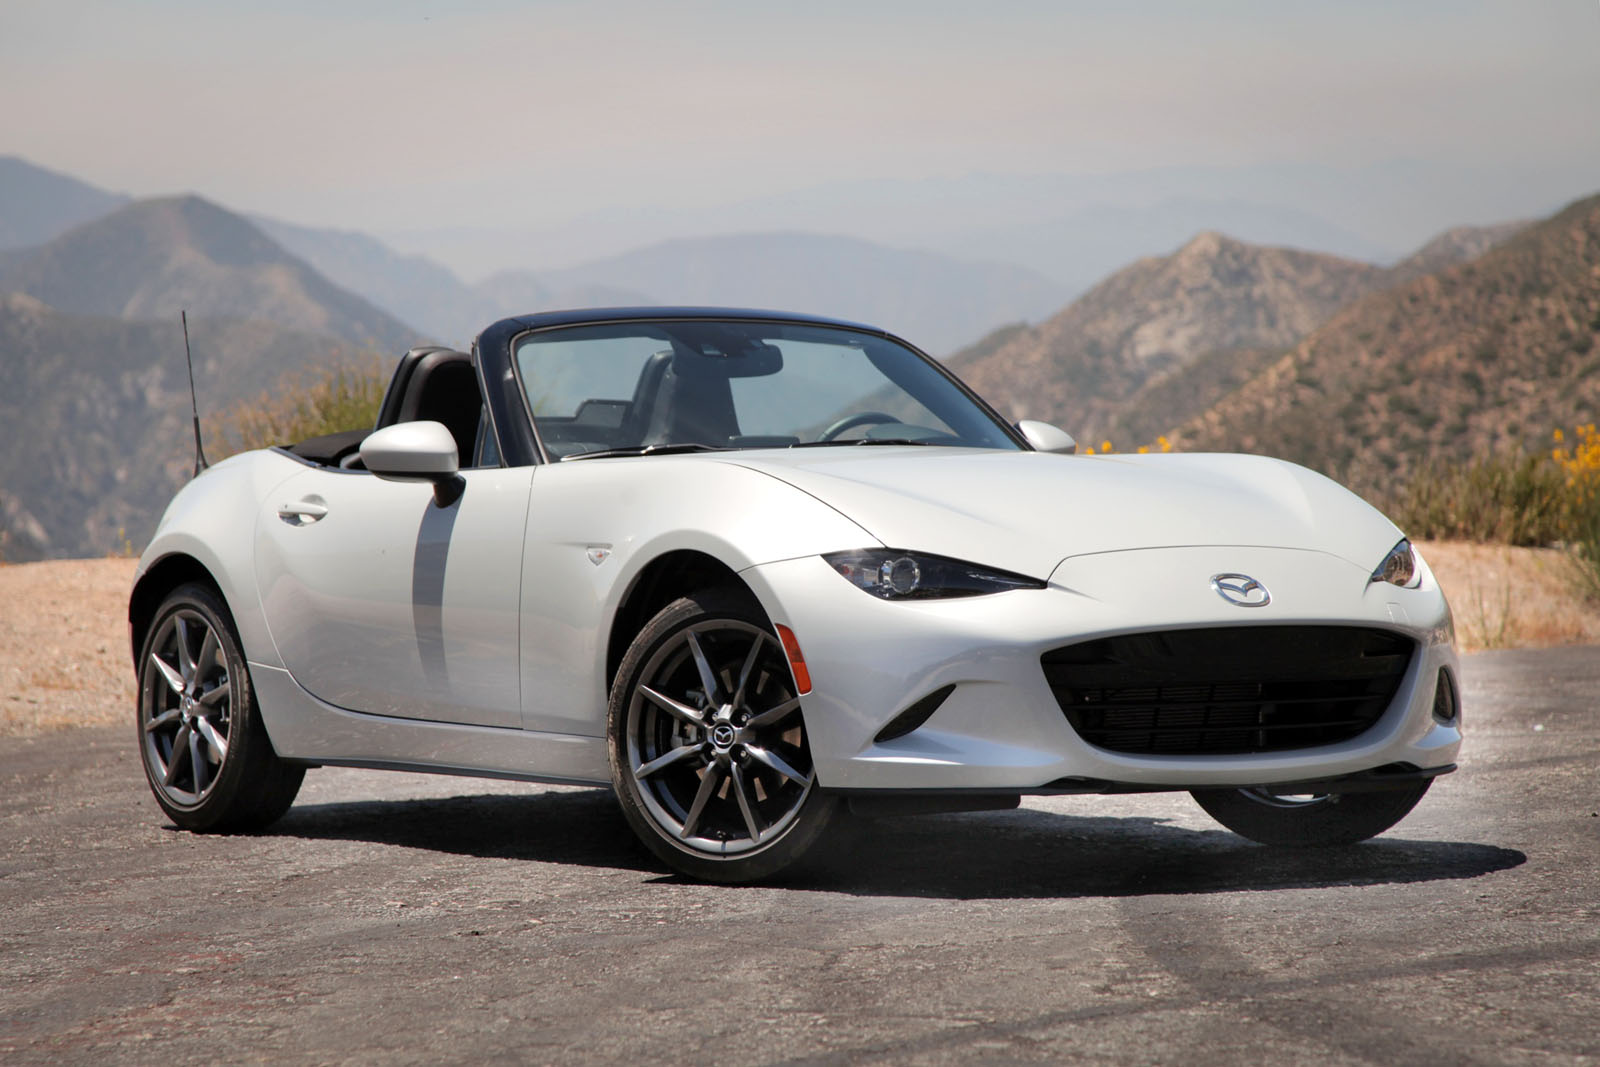 2016 mazda mx 5 review mazda mx 6 forum. Black Bedroom Furniture Sets. Home Design Ideas